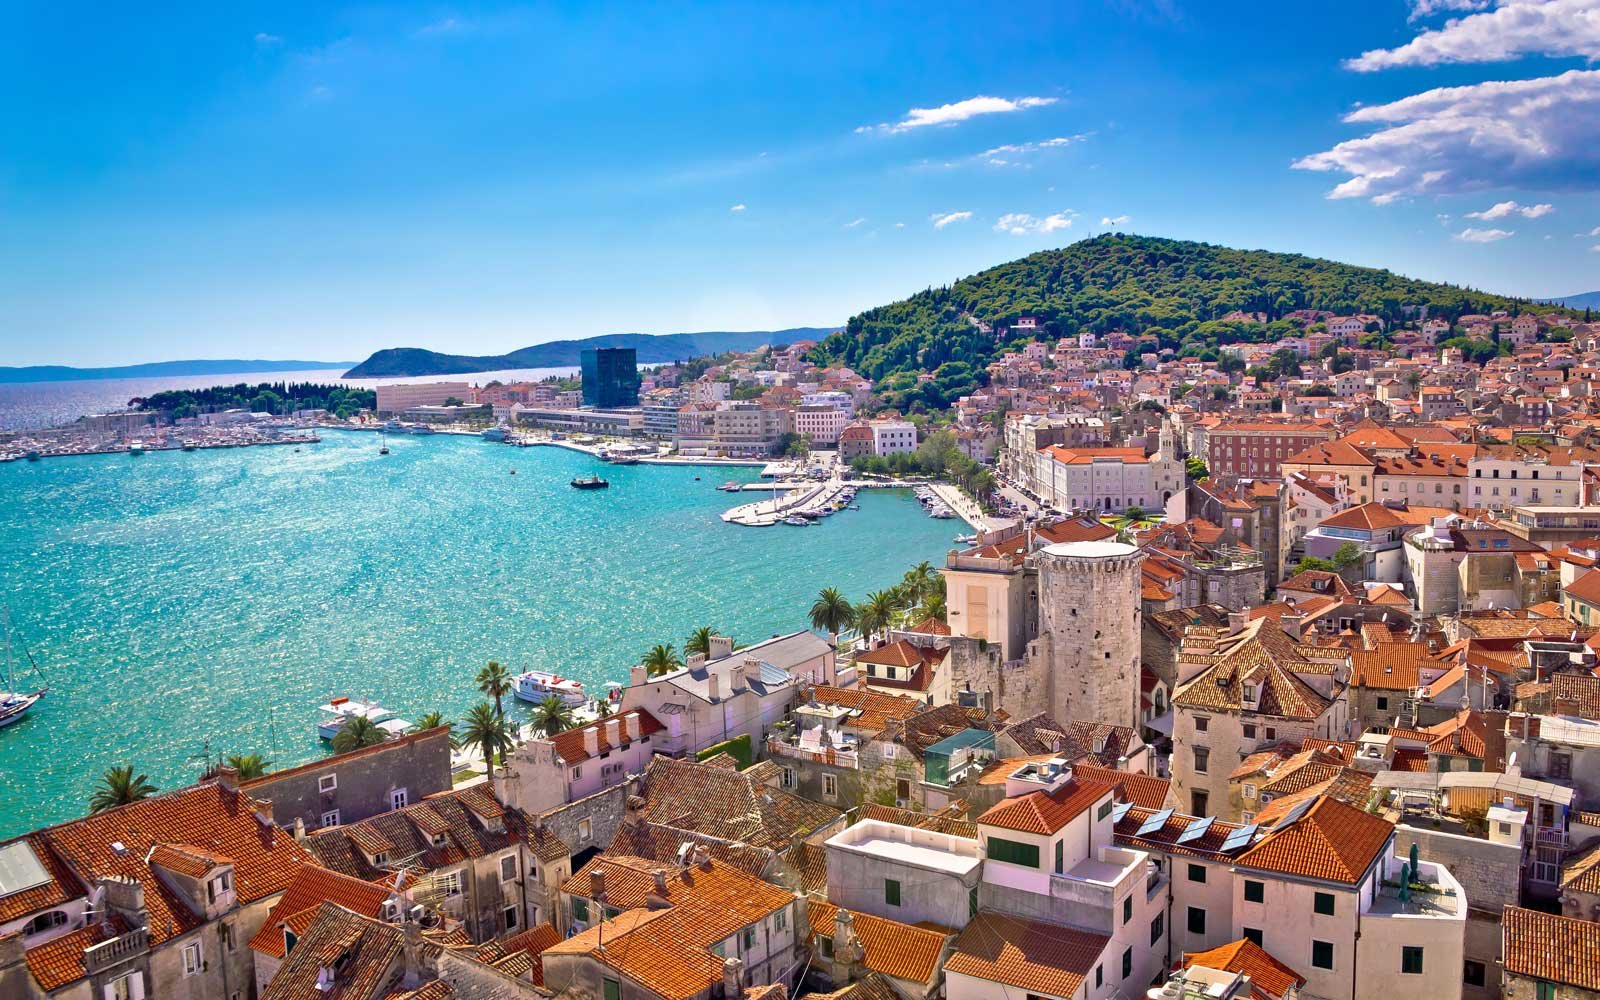 Affordable Vacation on Croatia's Dalmatian Coast